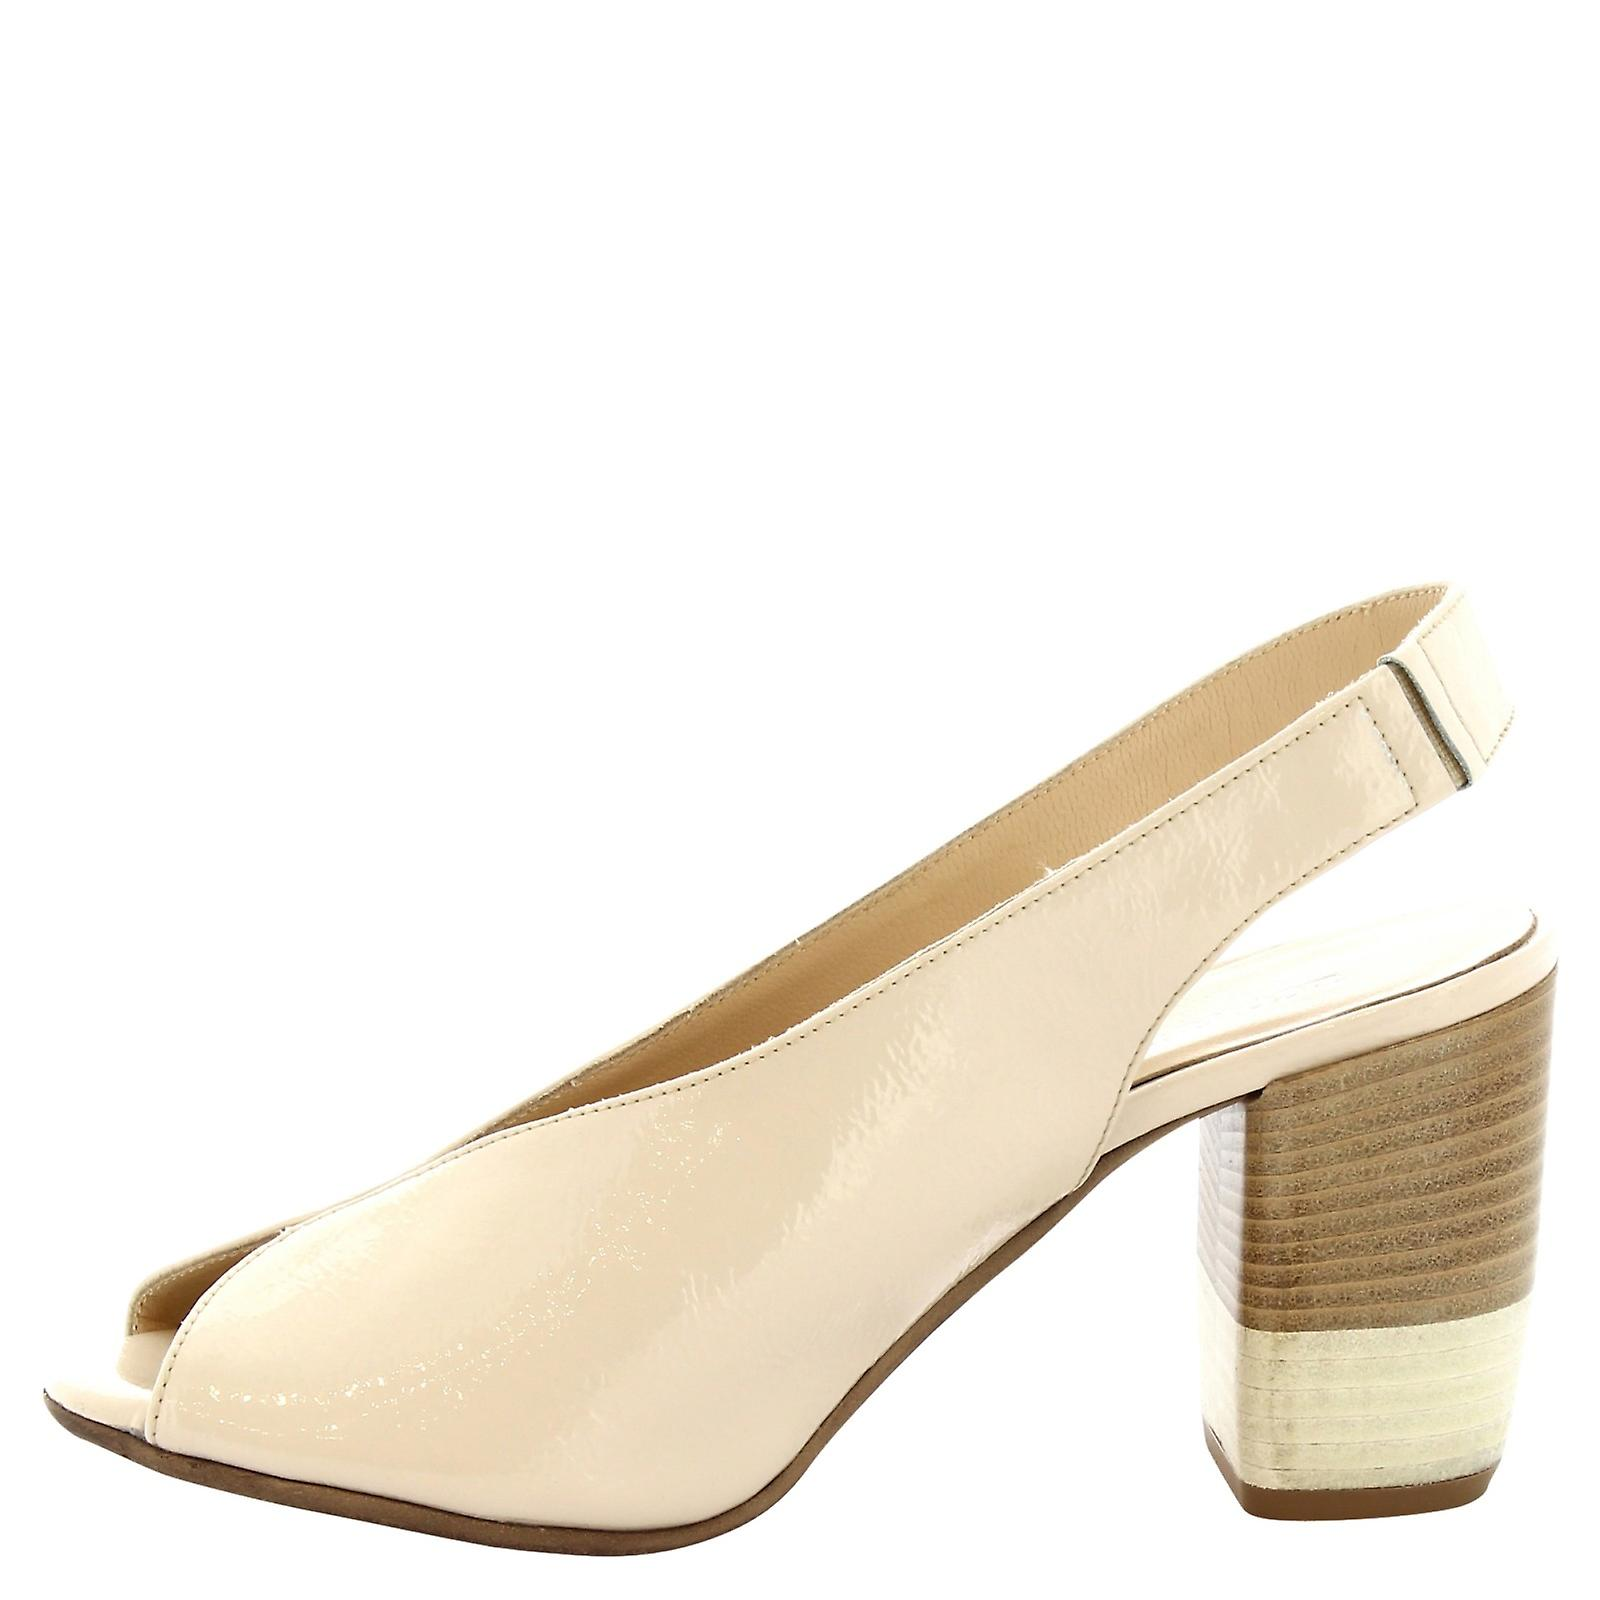 Leonardo Shoes Women's handmade heeled sandals in cream shiny calf leather